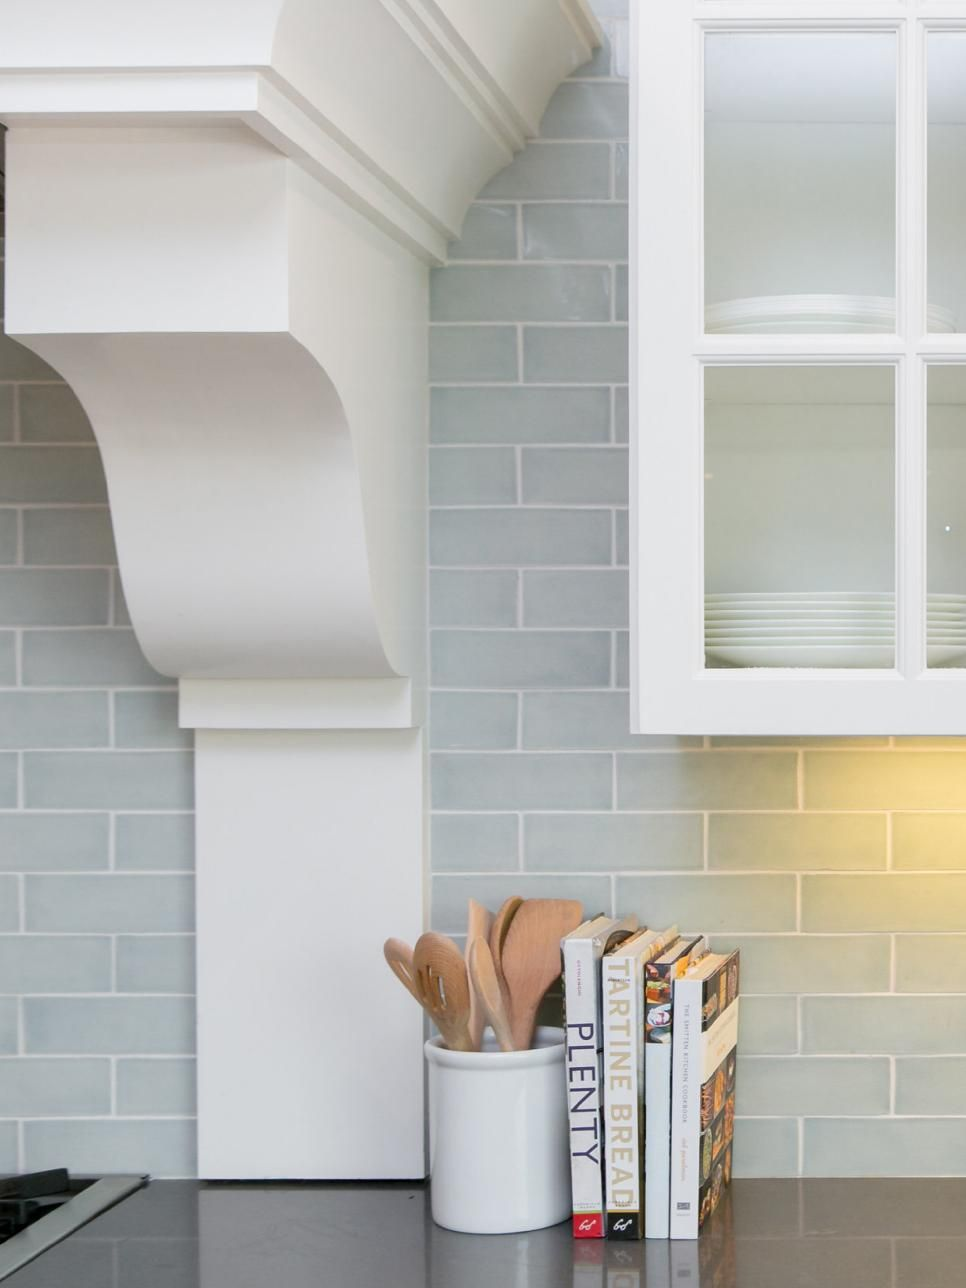 - Subway Tiles In A Pale Blue-gray Give Depth To The Backsplash And